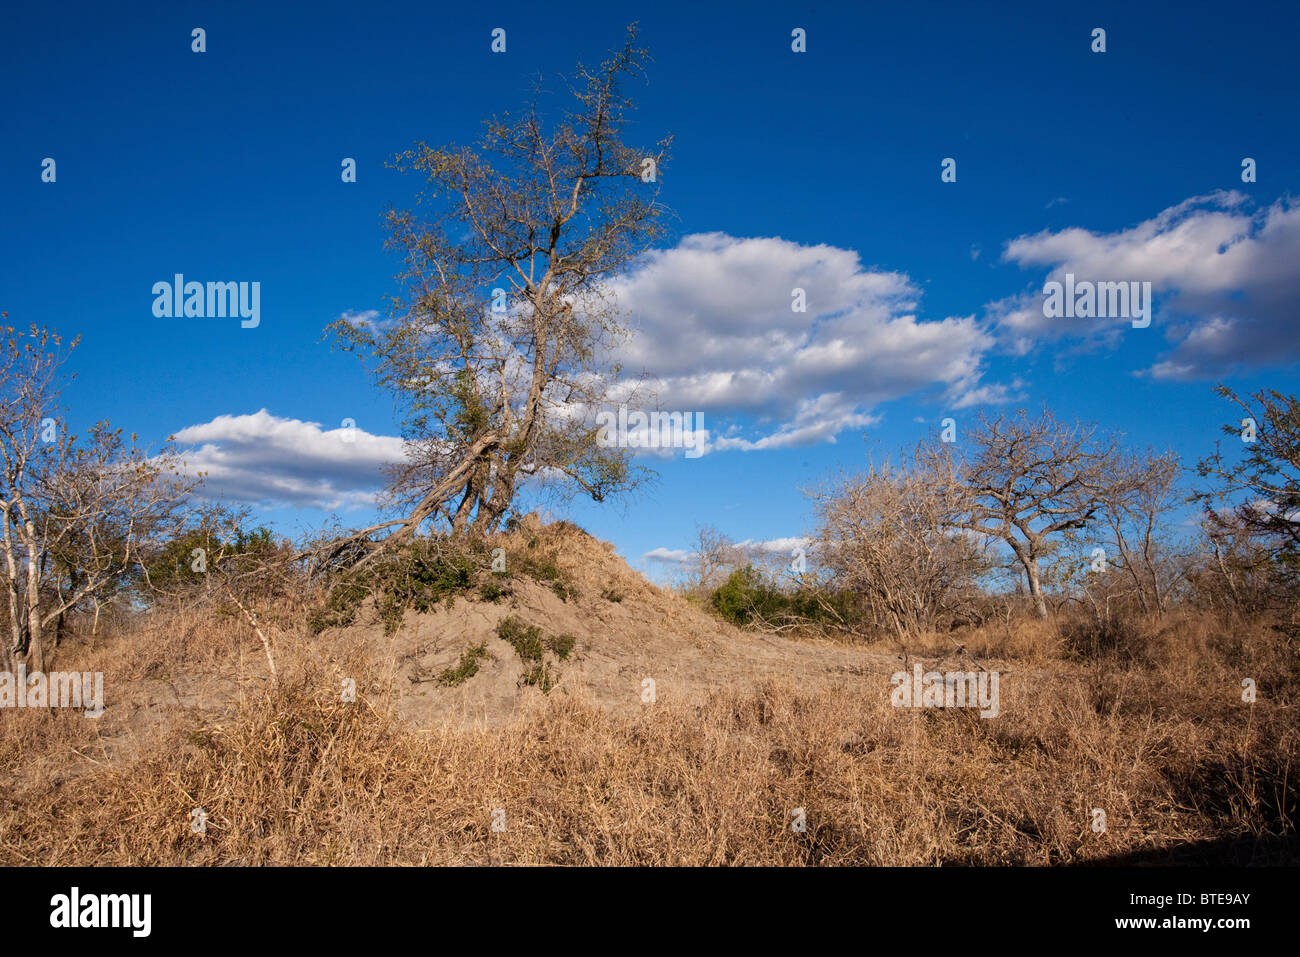 Bushveld scene with an anthill and leafless Marula trees during the dry season - Stock Image